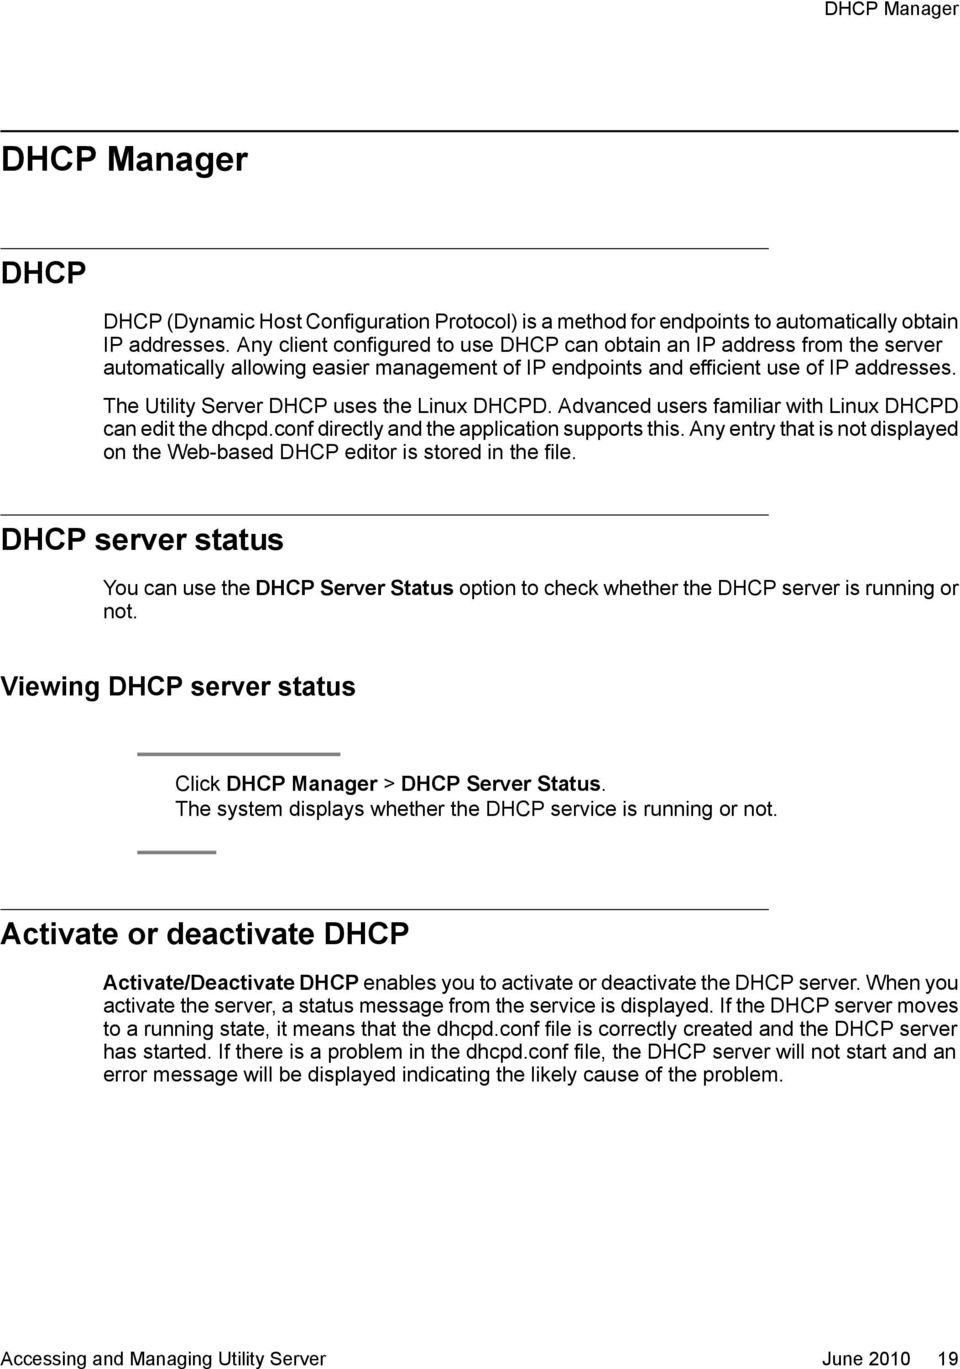 The Utility Server DHCP uses the Linux DHCPD. Advanced users familiar with Linux DHCPD can edit the dhcpd.conf directly and the application supports this.